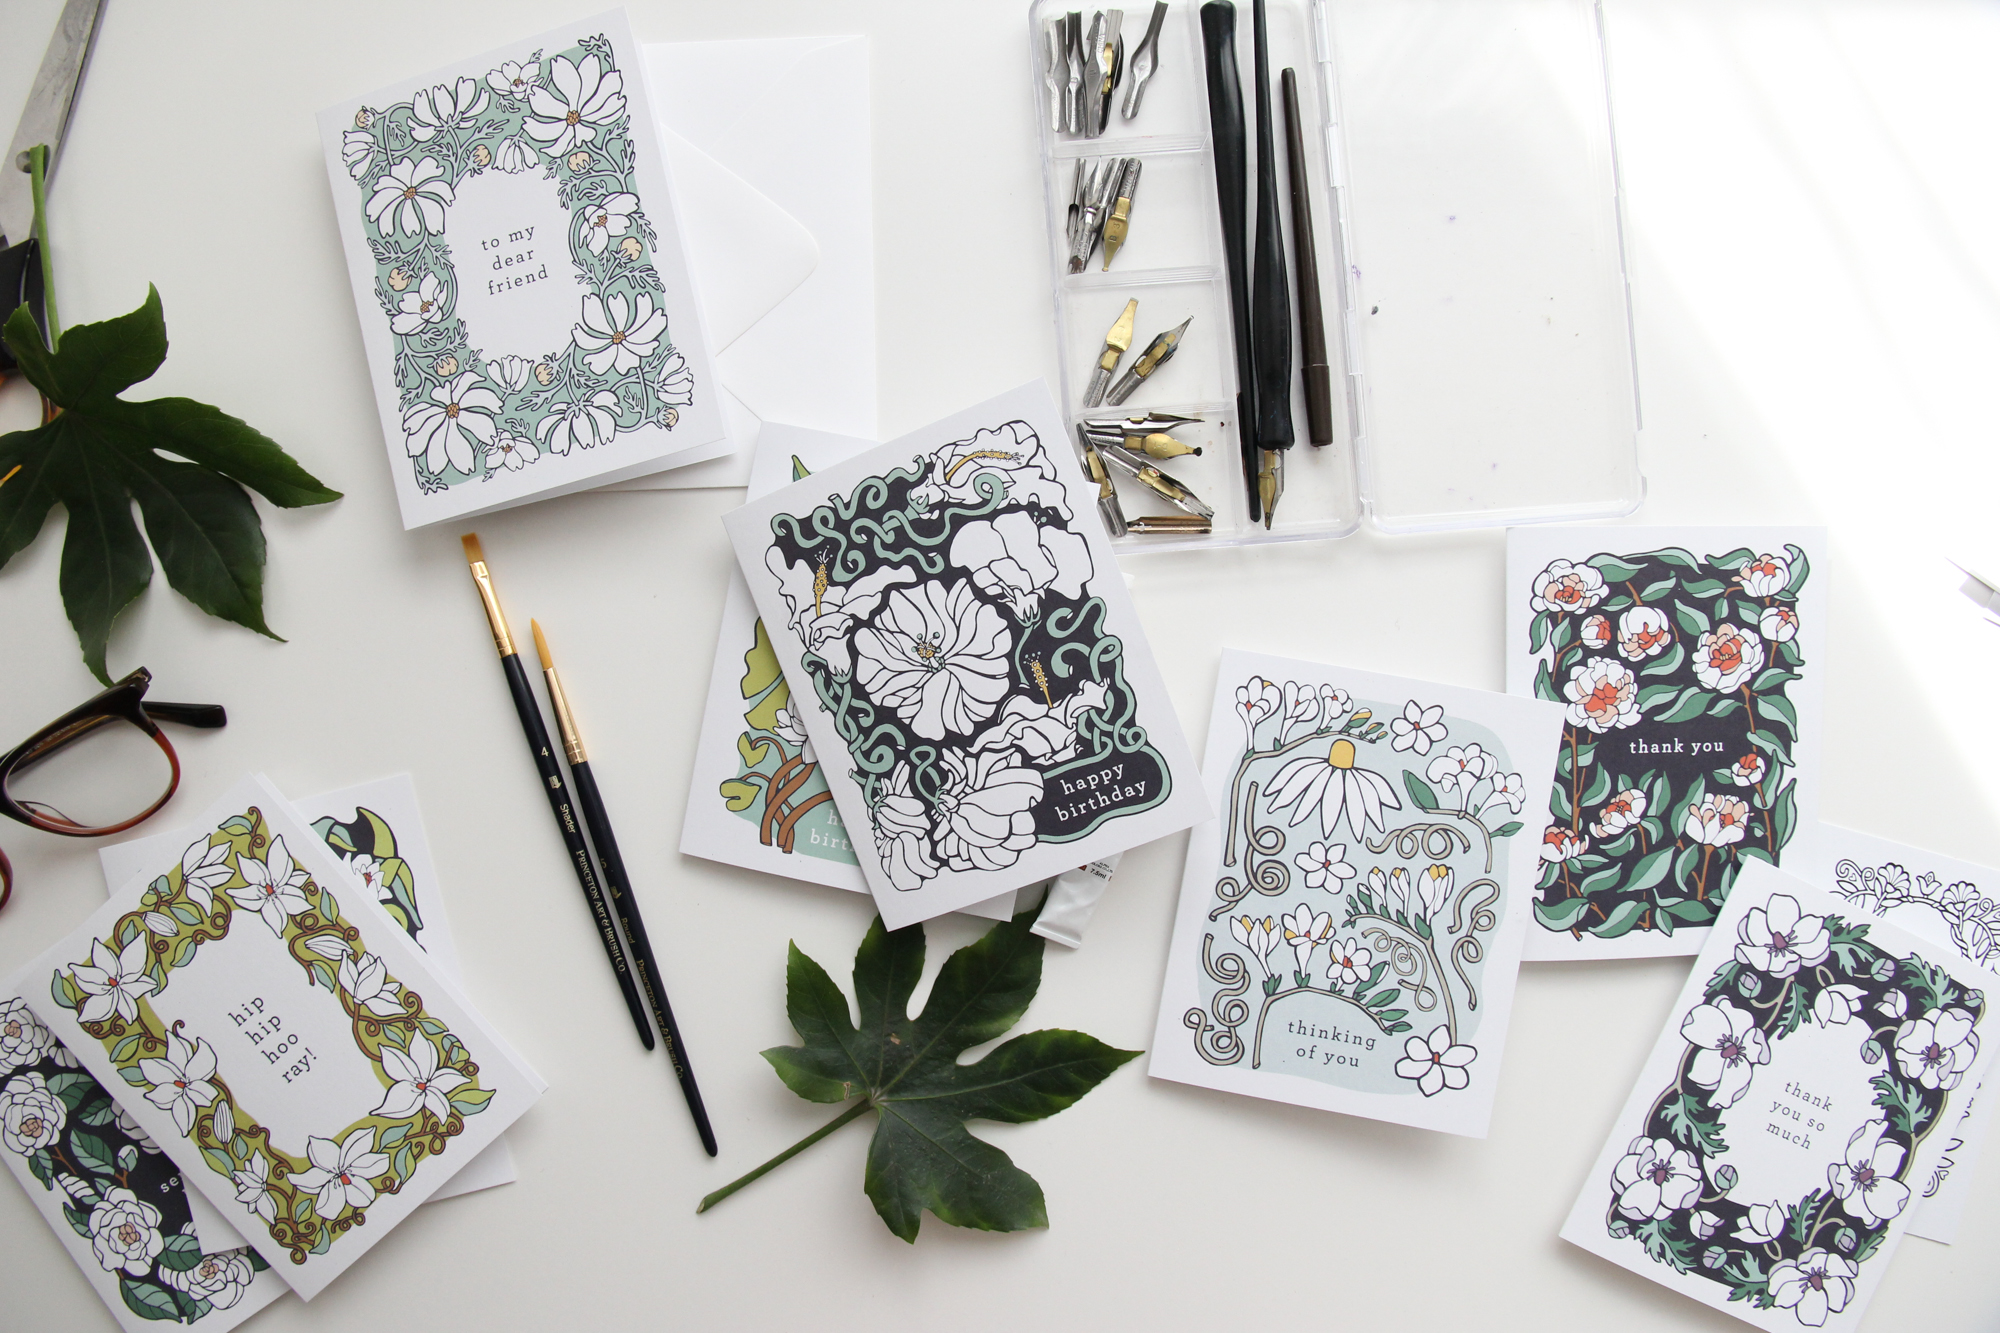 Greeting Cards by Jessie Tyree Jenness for Root & Branch Paper Co.